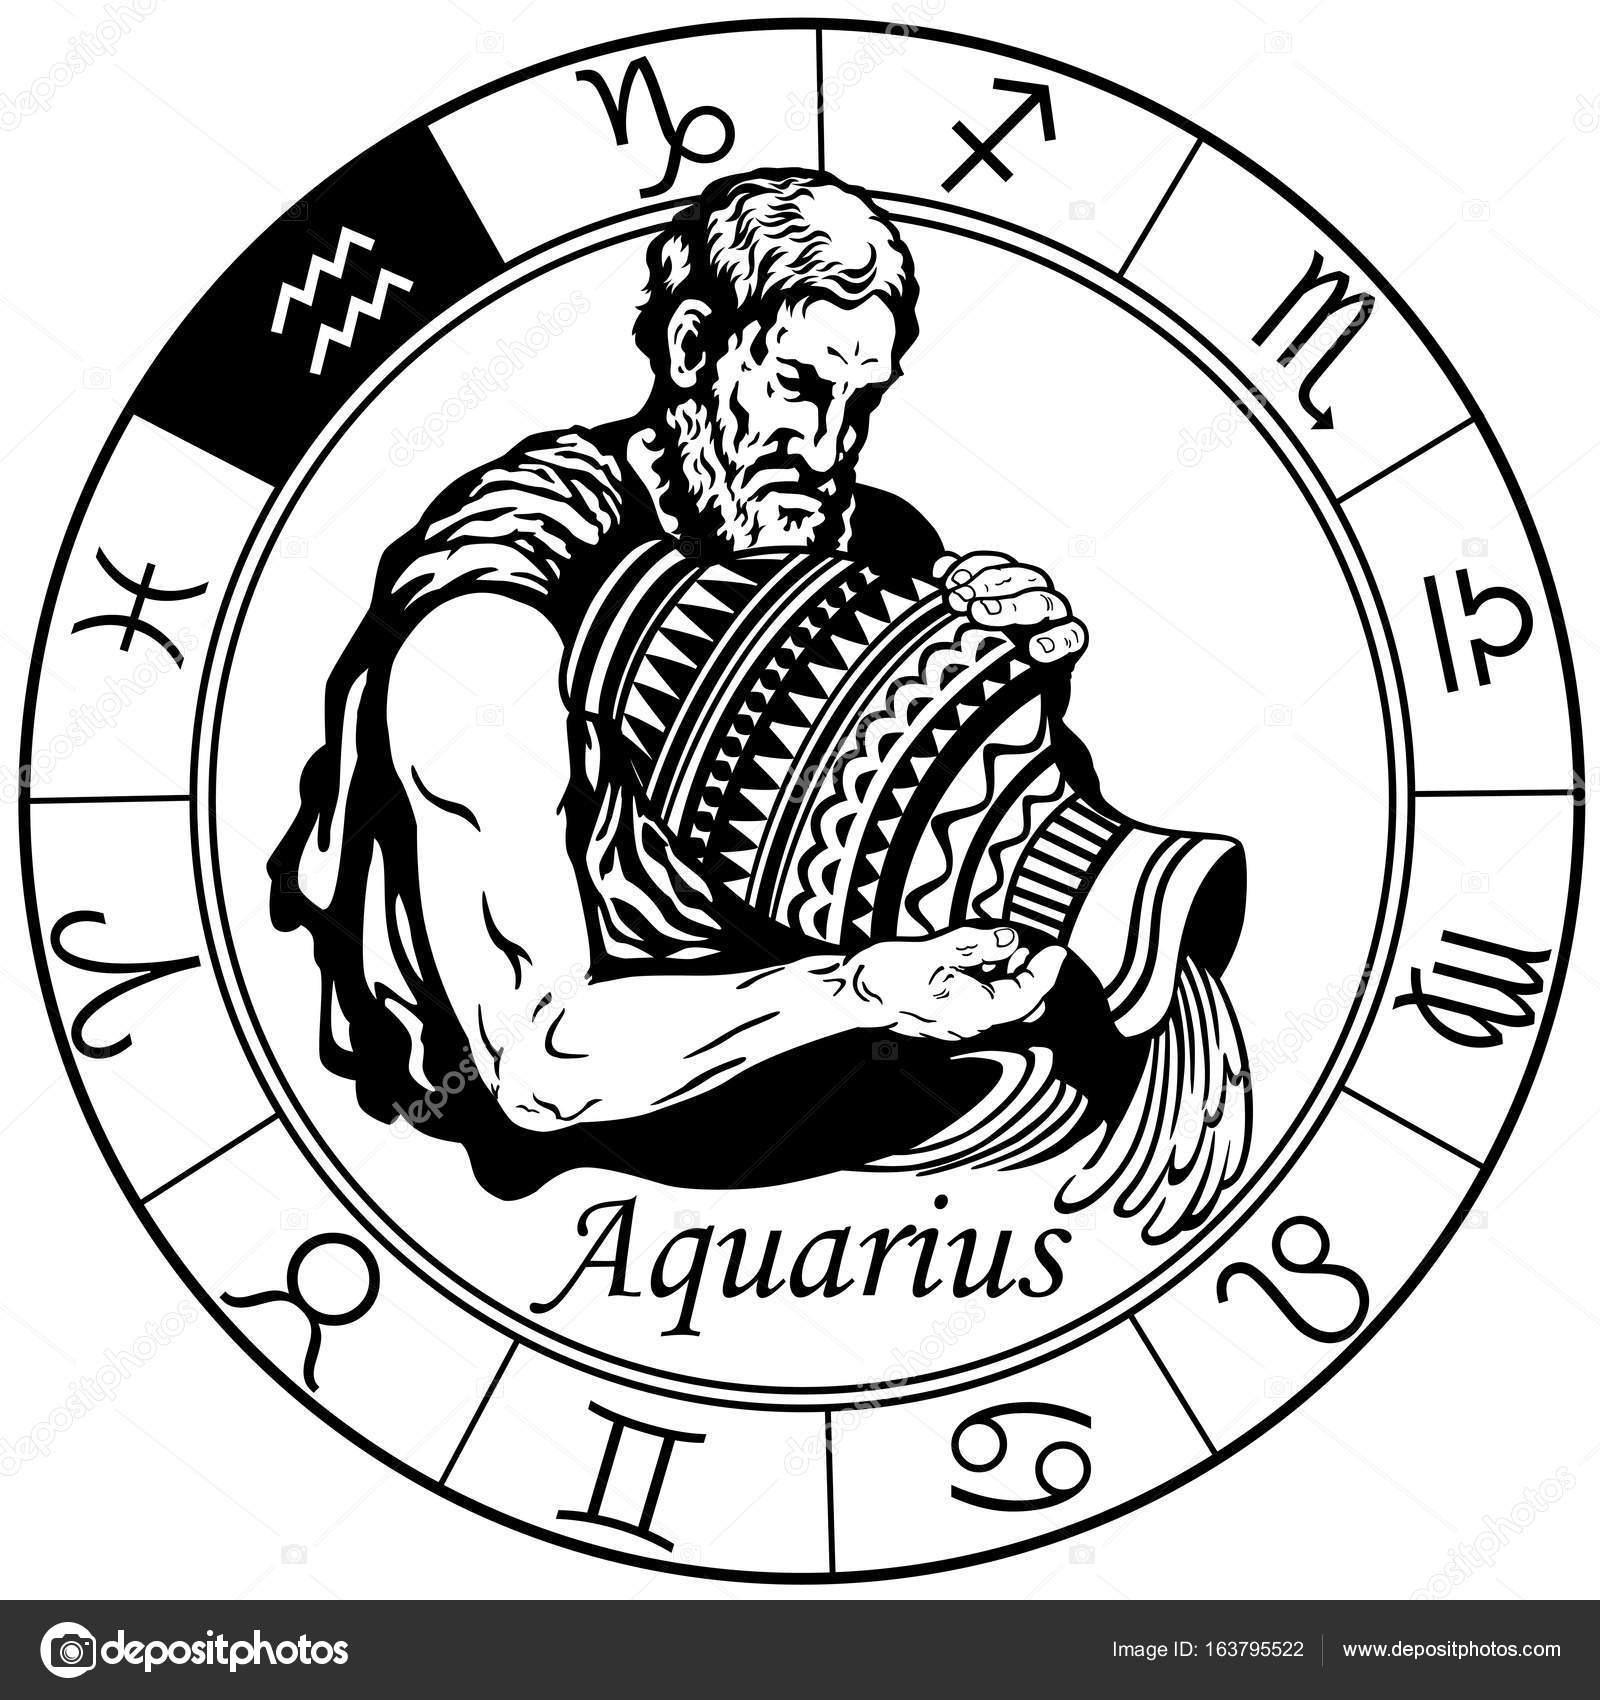 Aquarius zodiac sign black white stock vector insima 163795522 aquarius astrological horoscope sign in the zodiac wheel black and white vector illustration vector by insima biocorpaavc Image collections